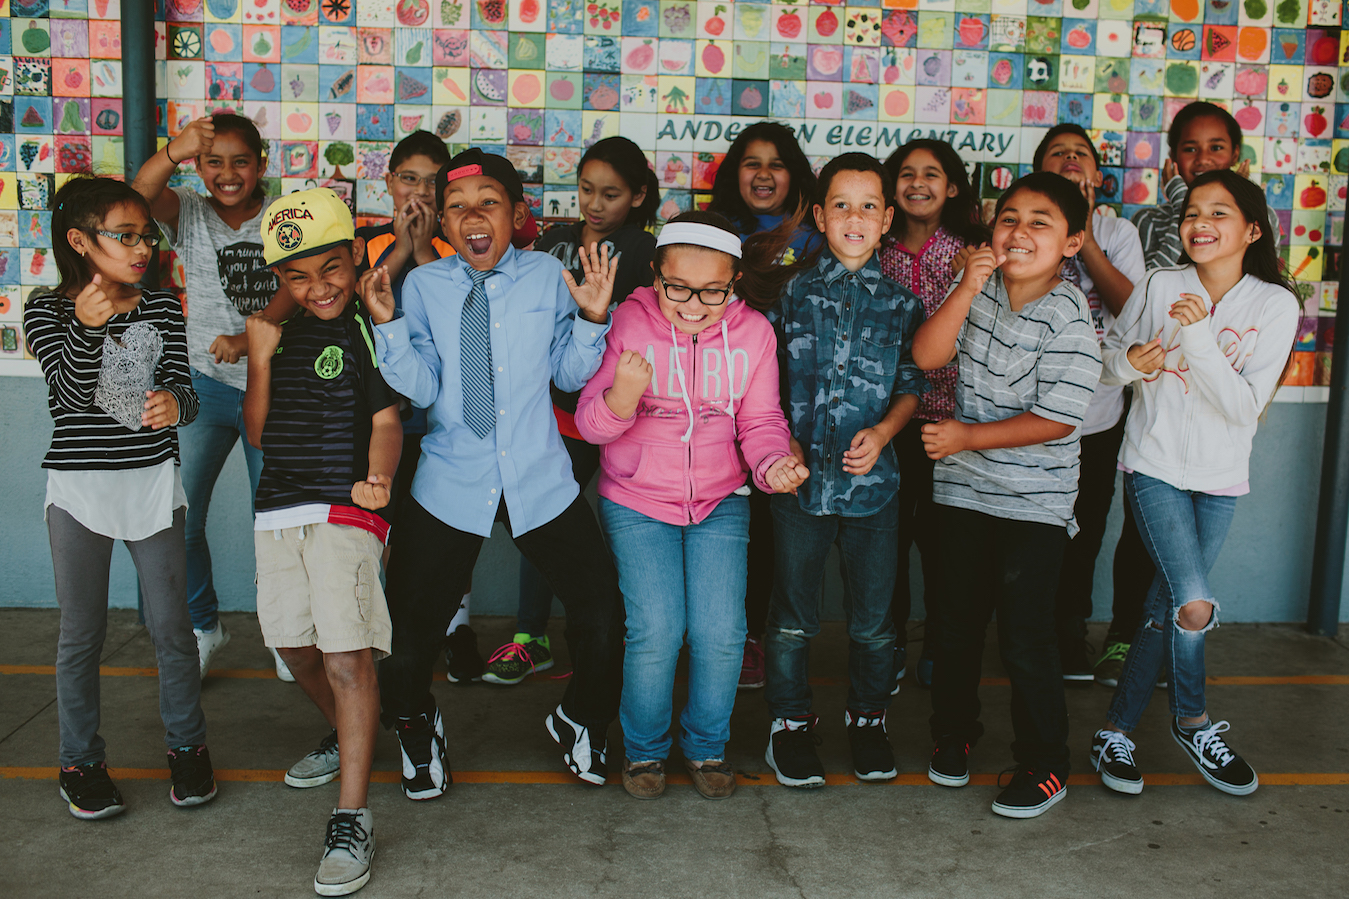 Evelyn Park is encouraging students to connect with music